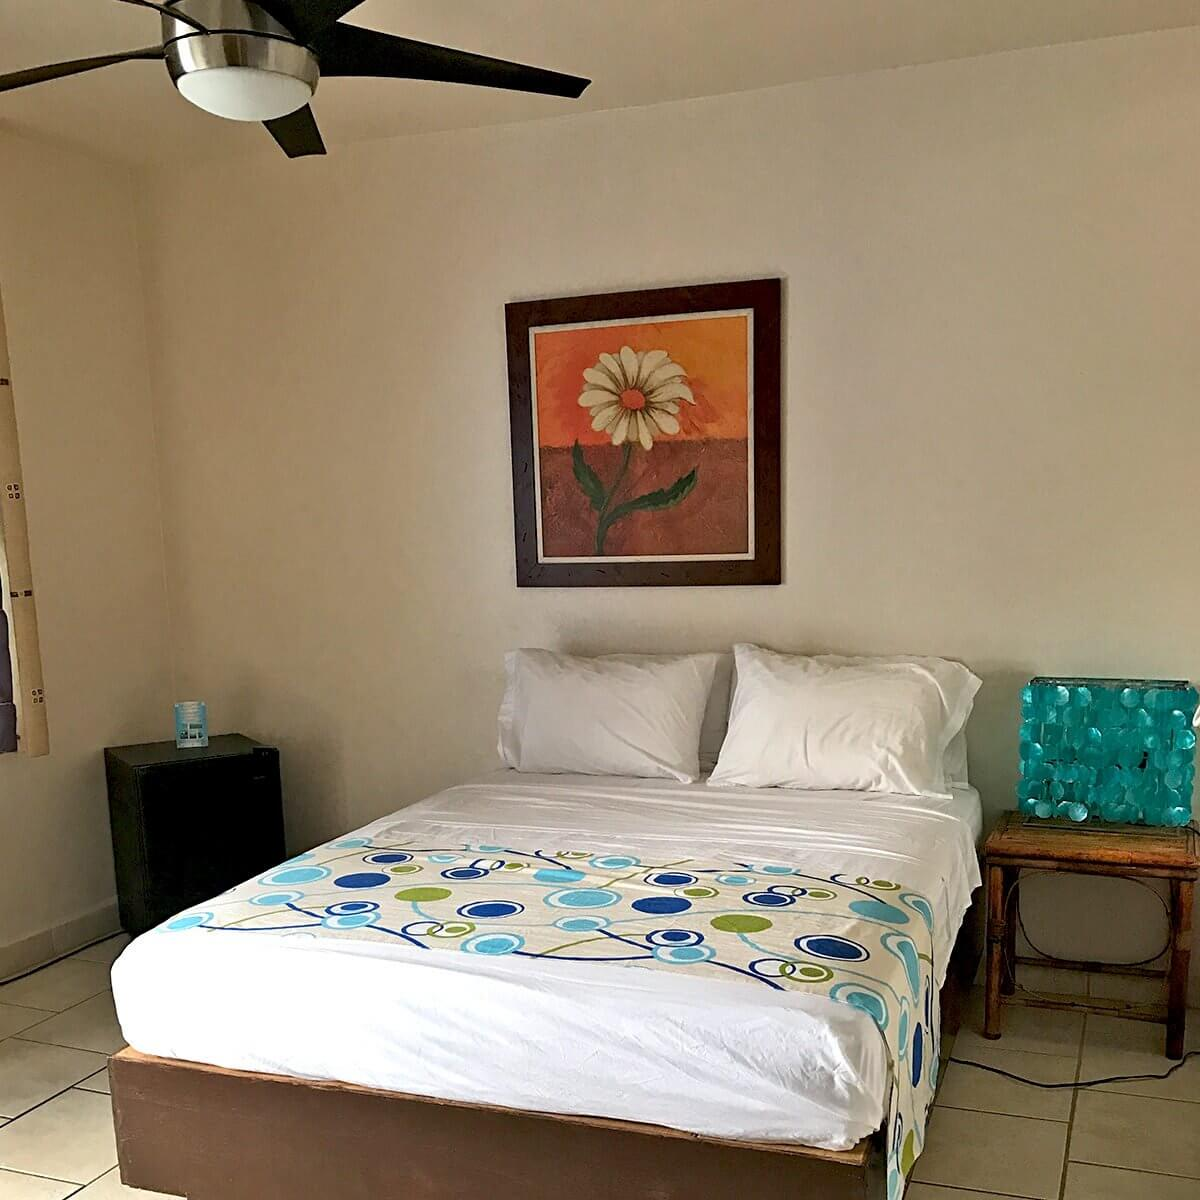 Villa Boheme Guest Room #8 - Queen bed with ceiling fan, mini fridge and nightstand with sparkly lamp.